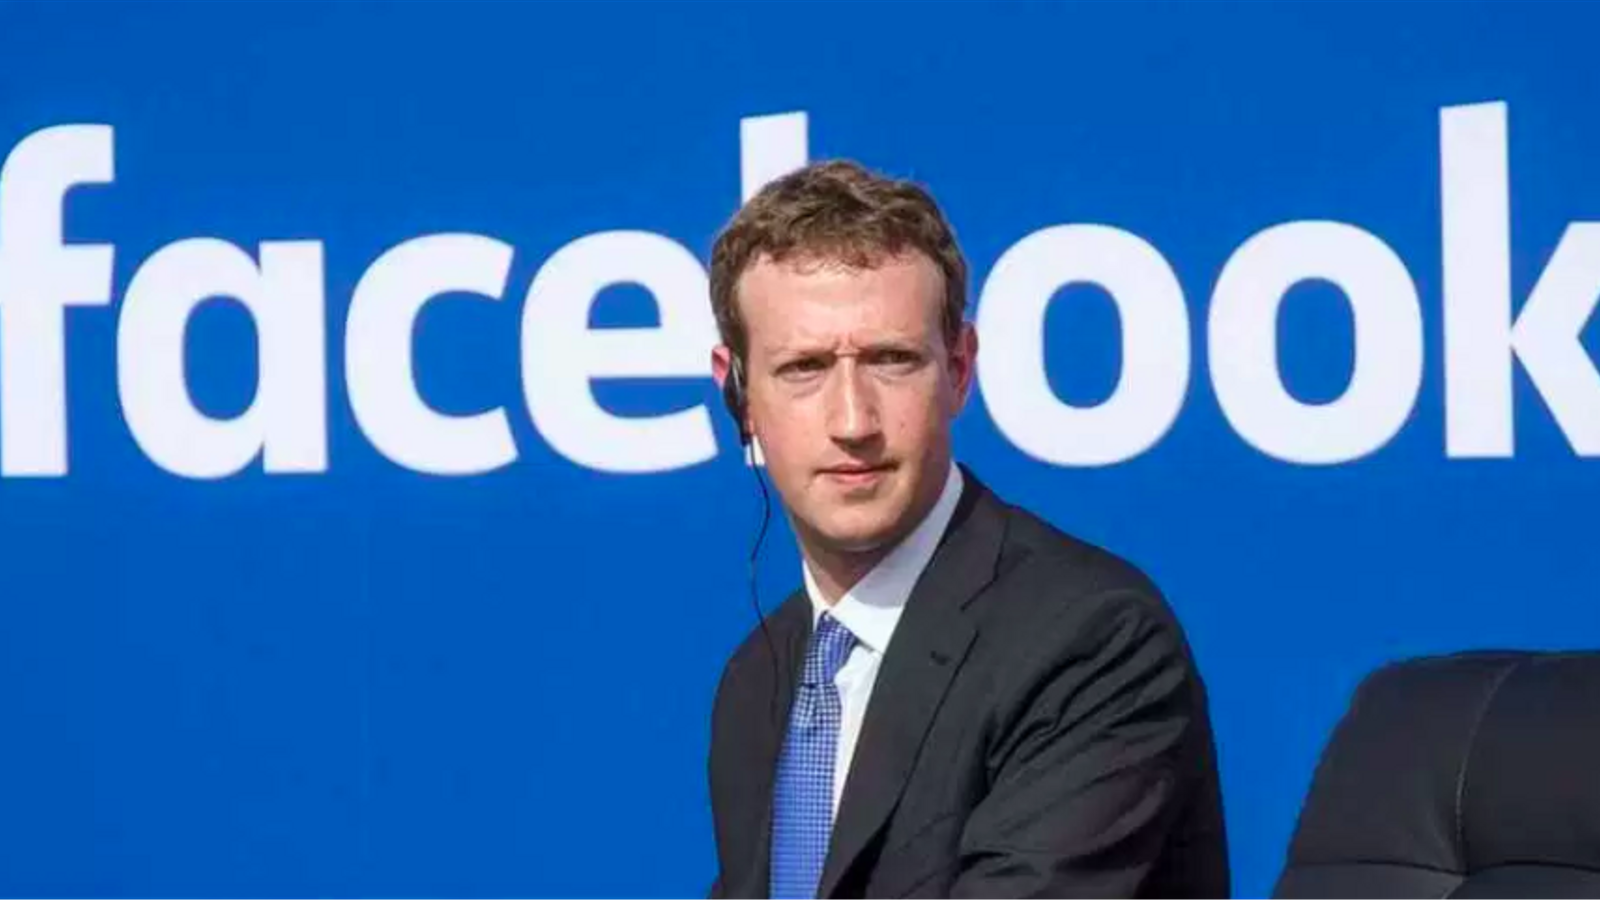 Mark Zuckerberg, fundador de Facebook / GETTY IMAGES